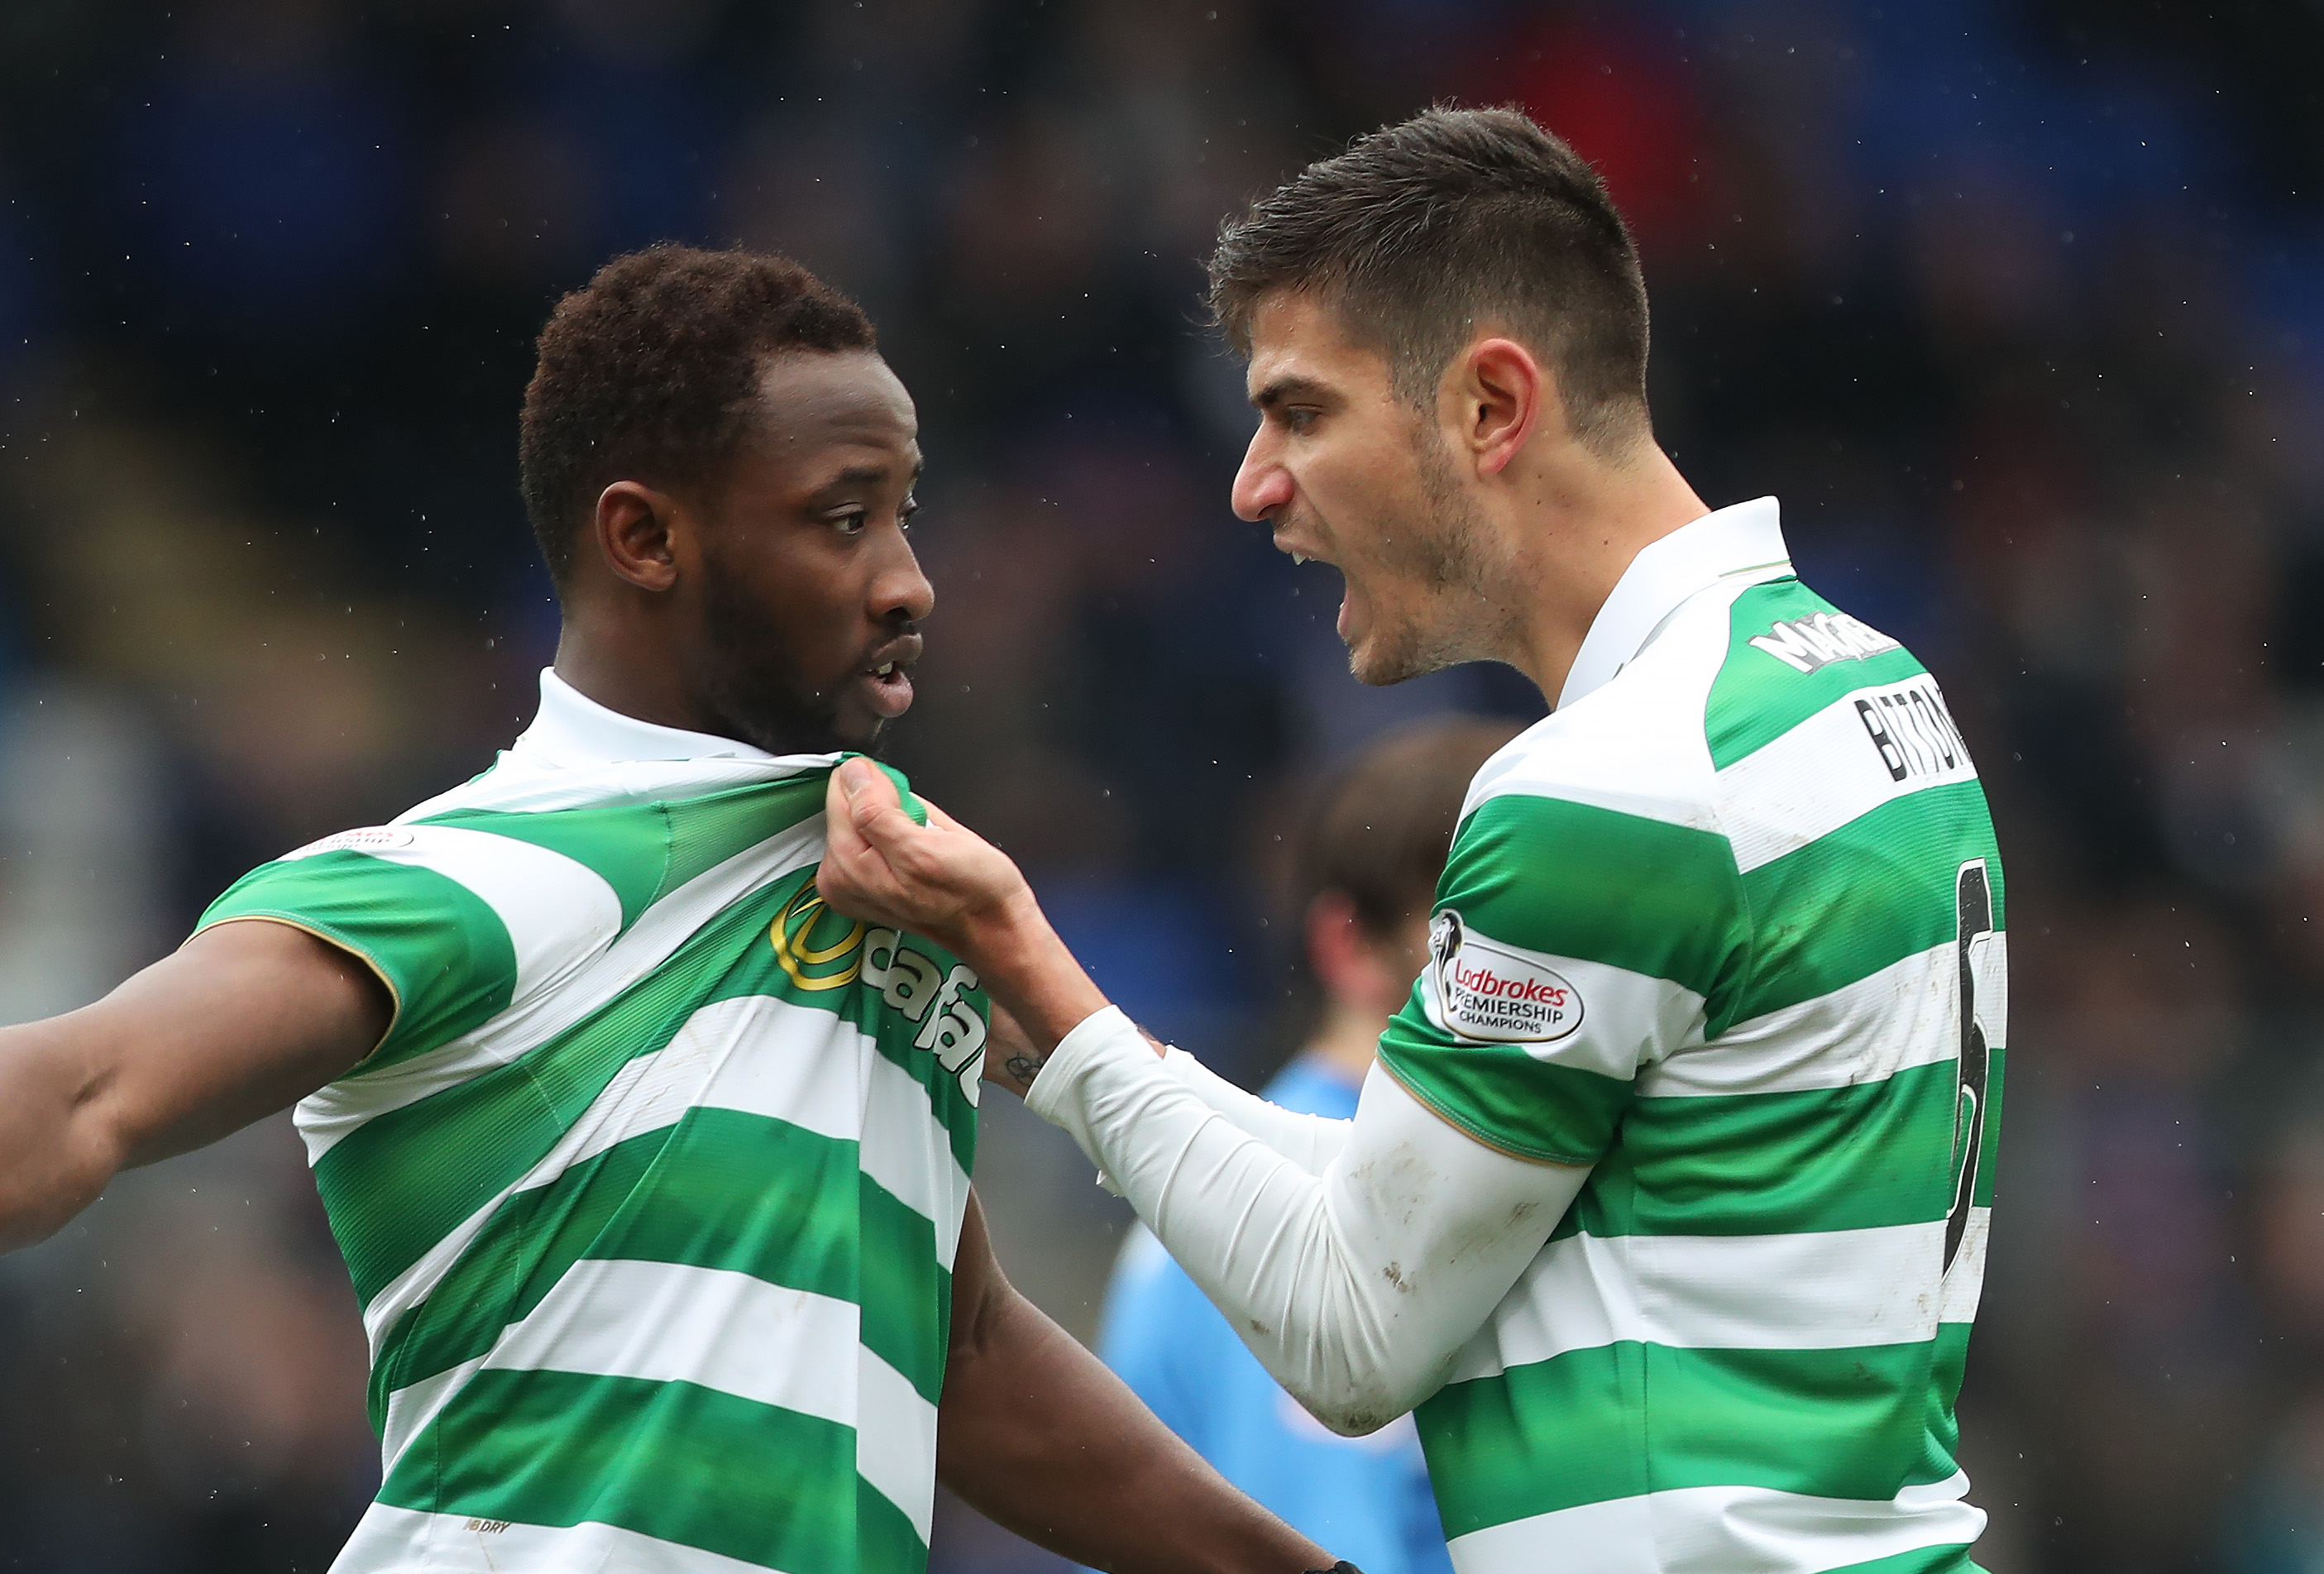 Celtic v St Mirren TV channel, date, kick-off time, odds and recent meetings